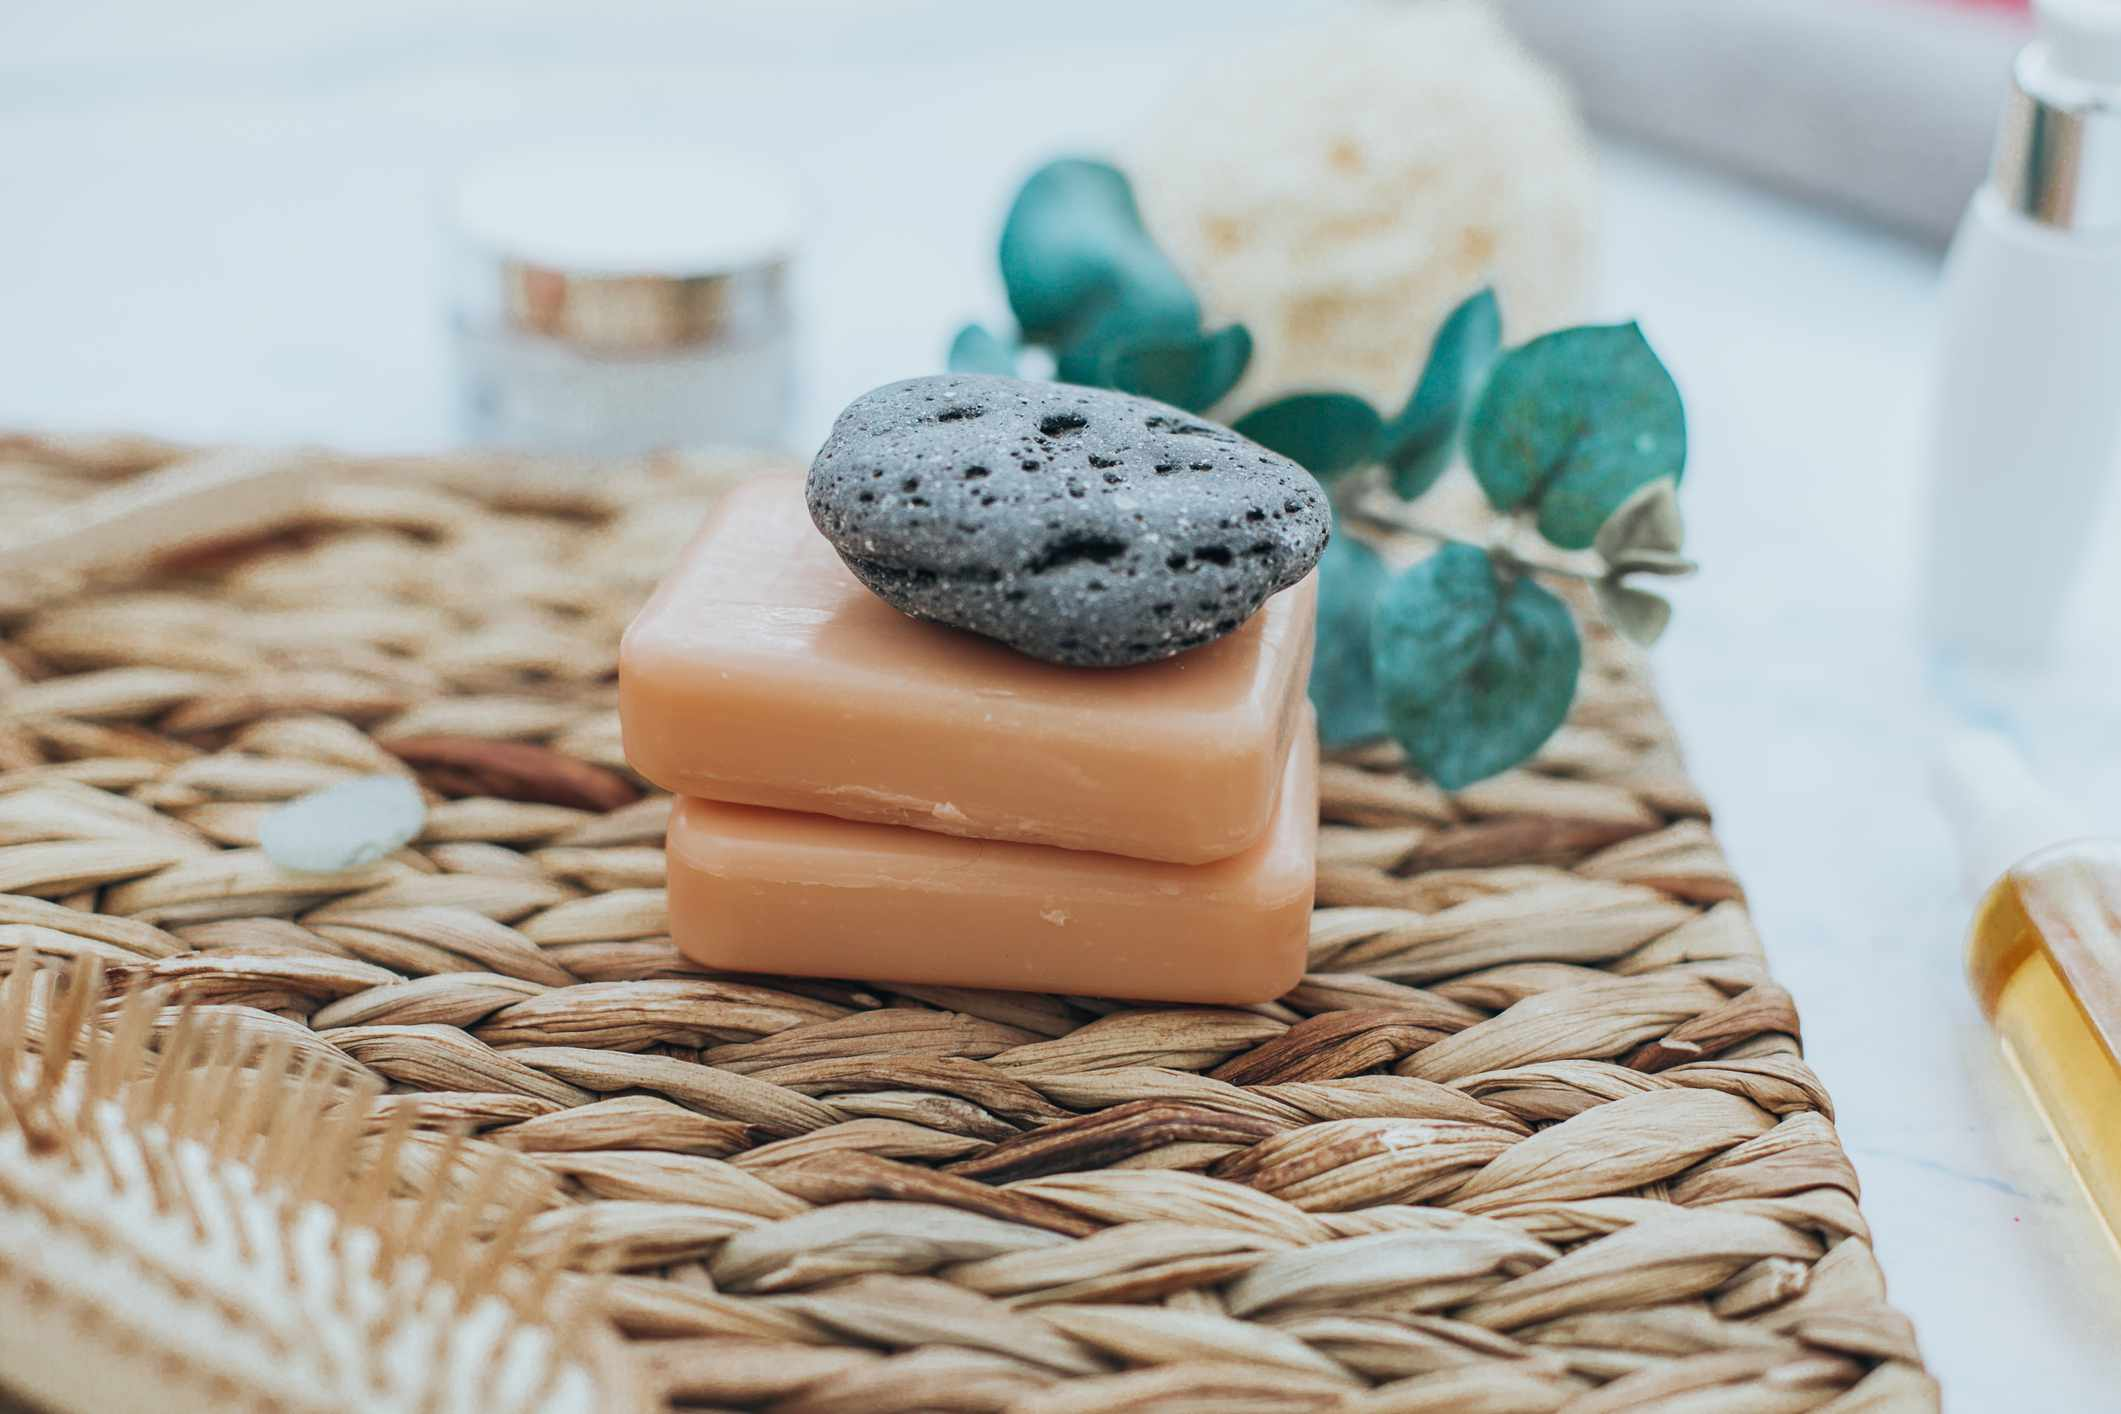 A stack of natural soaps on a counter